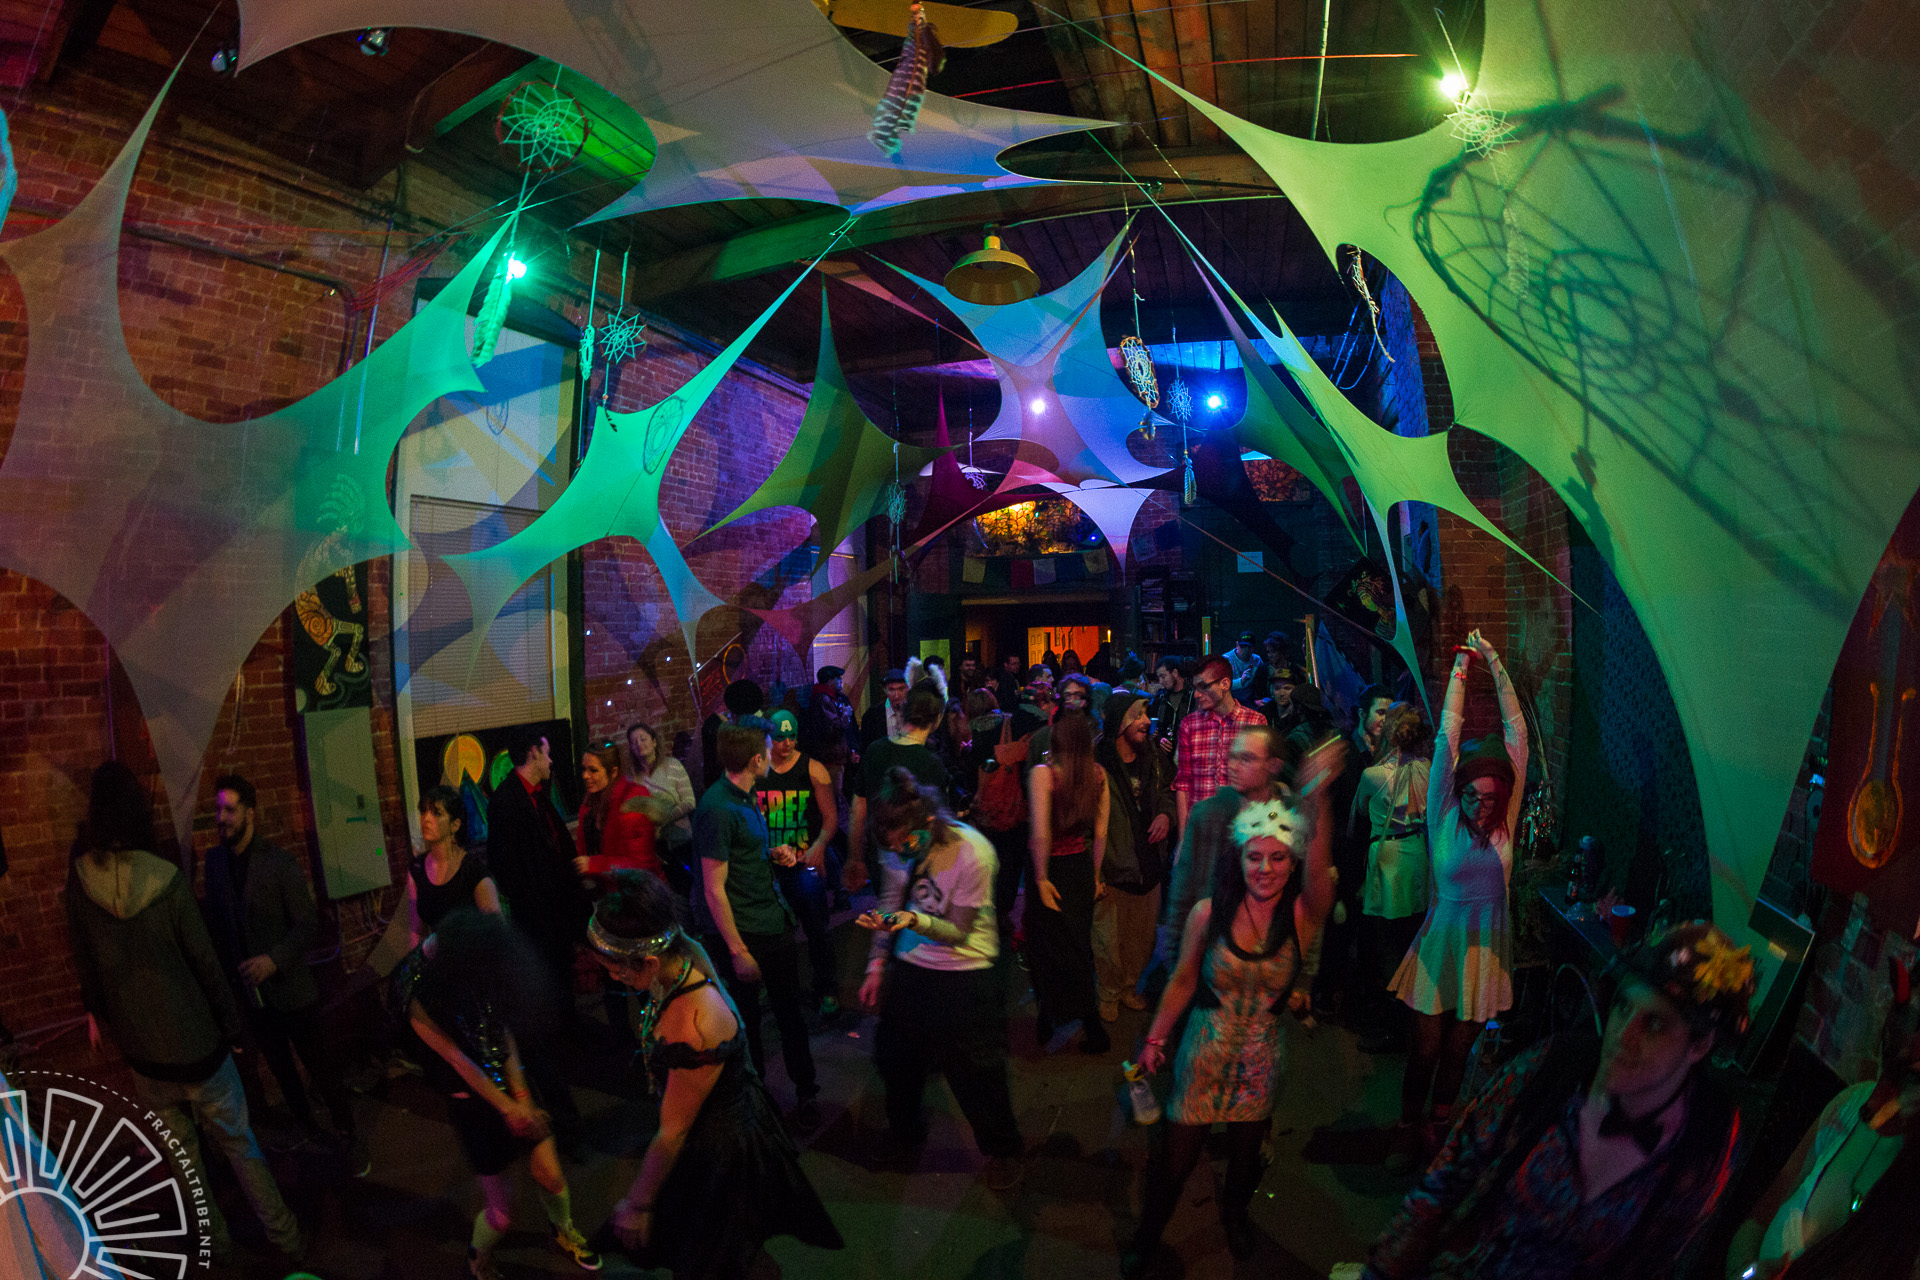 Gallery @ Fractaltribe presents Year of the Fractilian 2014